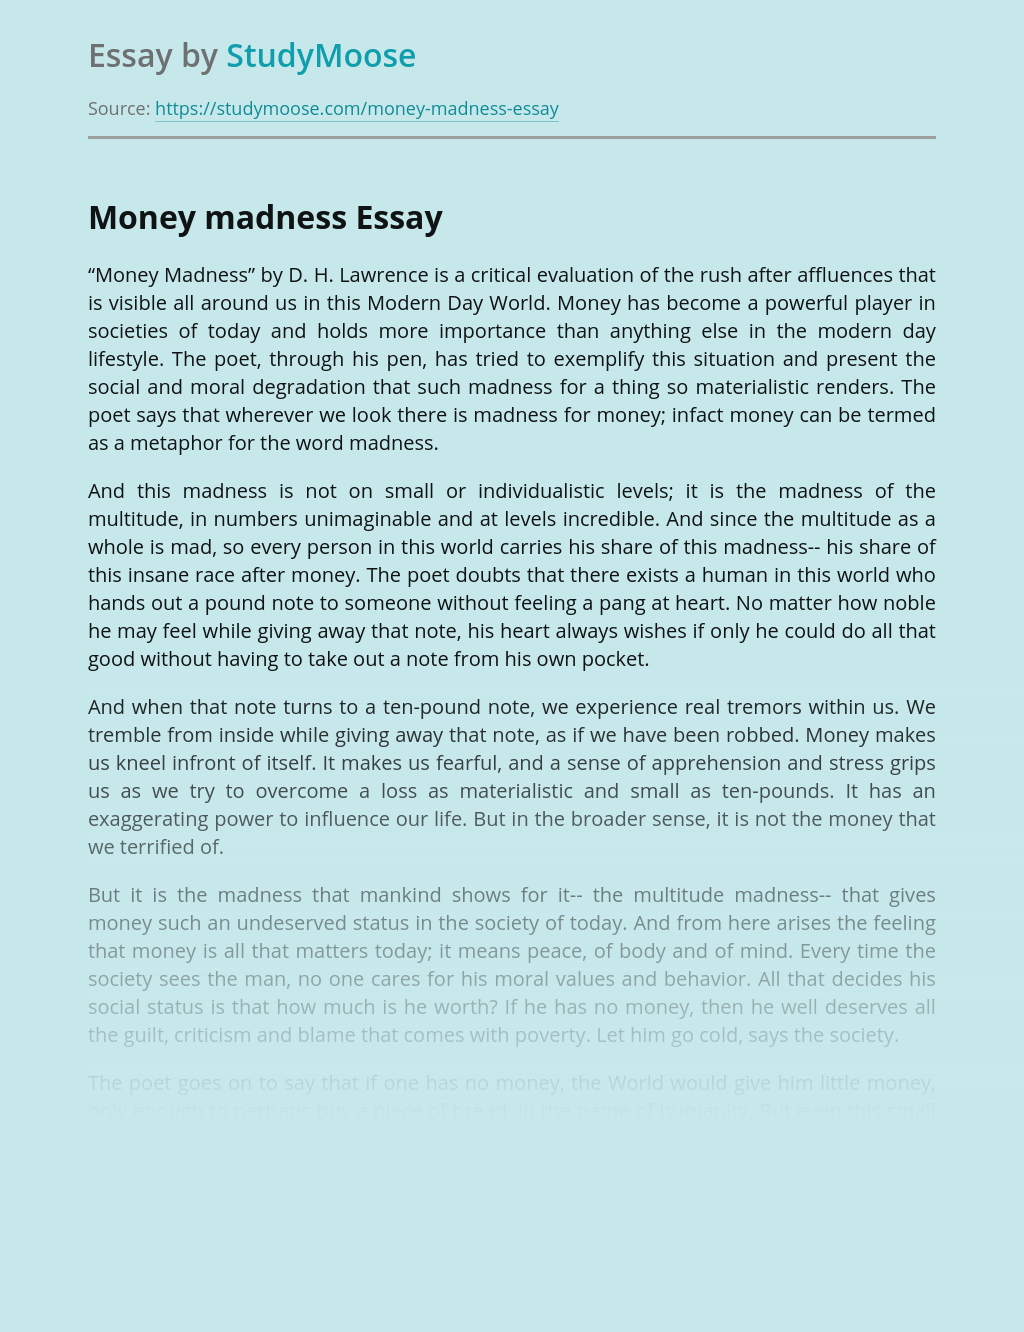 """""""Money Madness"""" - a critical evaluation of the rush"""